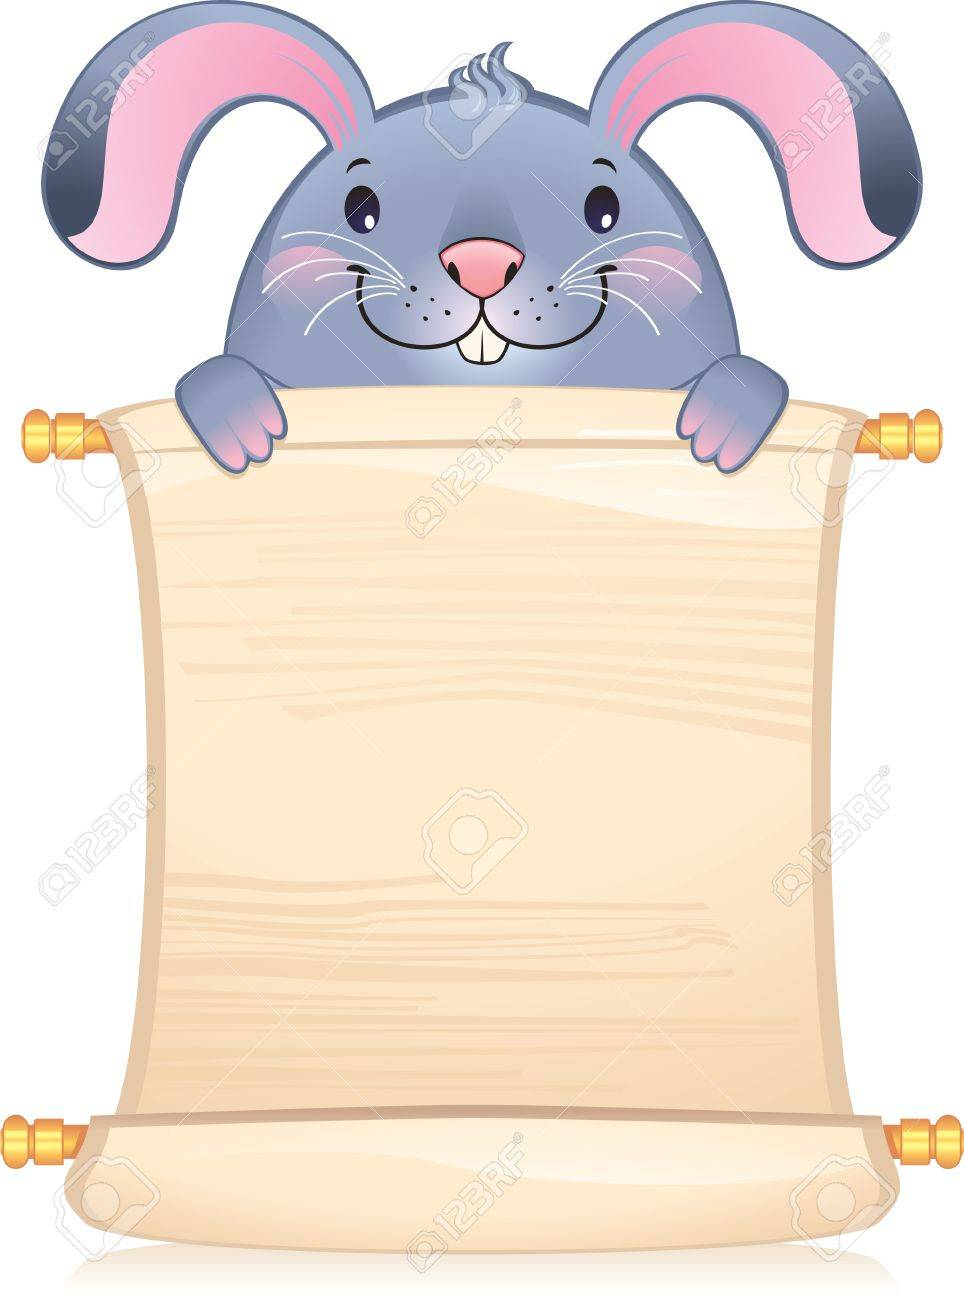 Rabbit with scroll - symbol of Chinese horoscope - 8912620